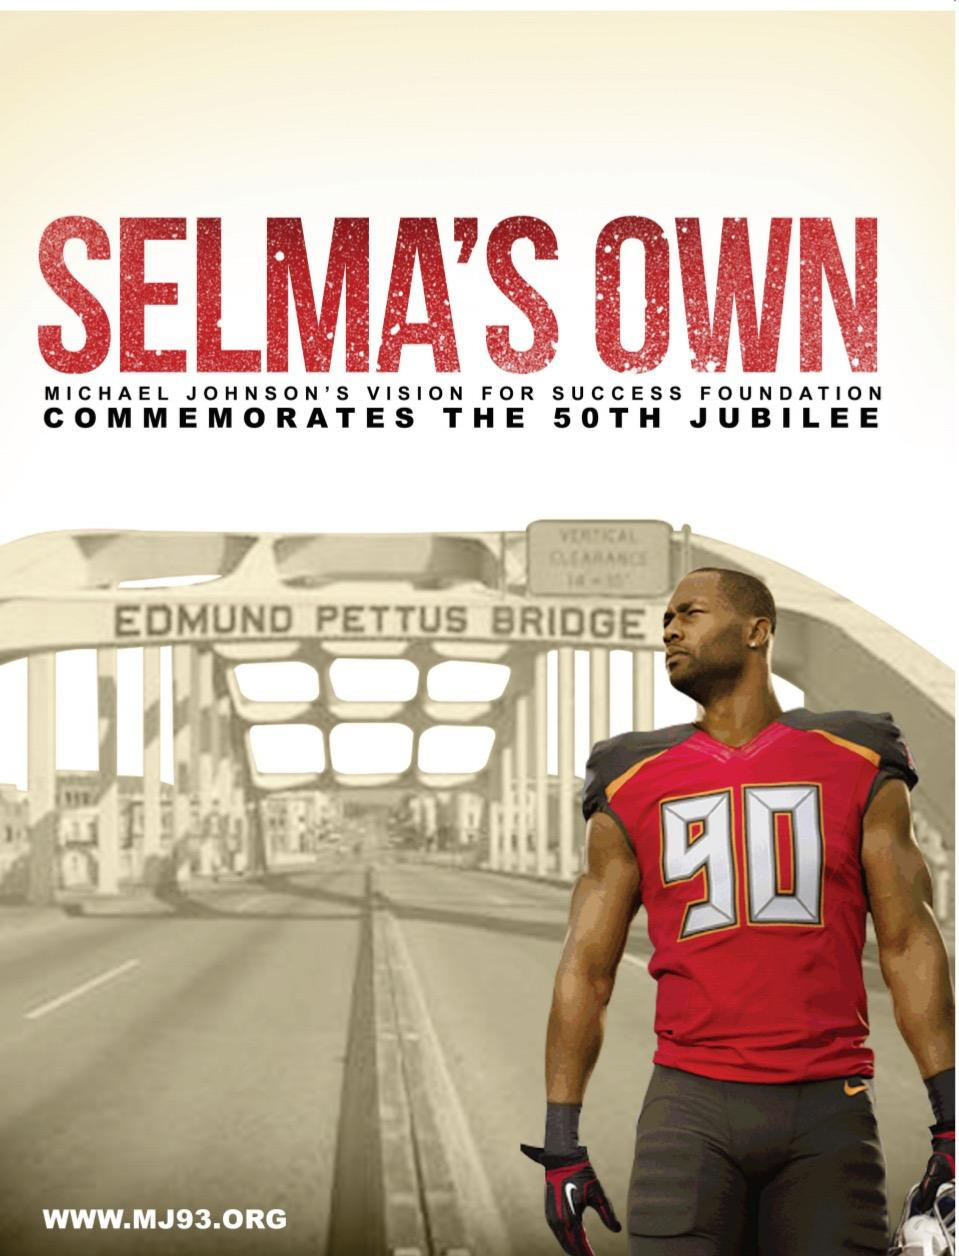 Proud Native Michael Johnson to Participate in the Selma 50th Jubilee commemorating the historical crossing of the Edmund Pettis Bridge March 5th-9th